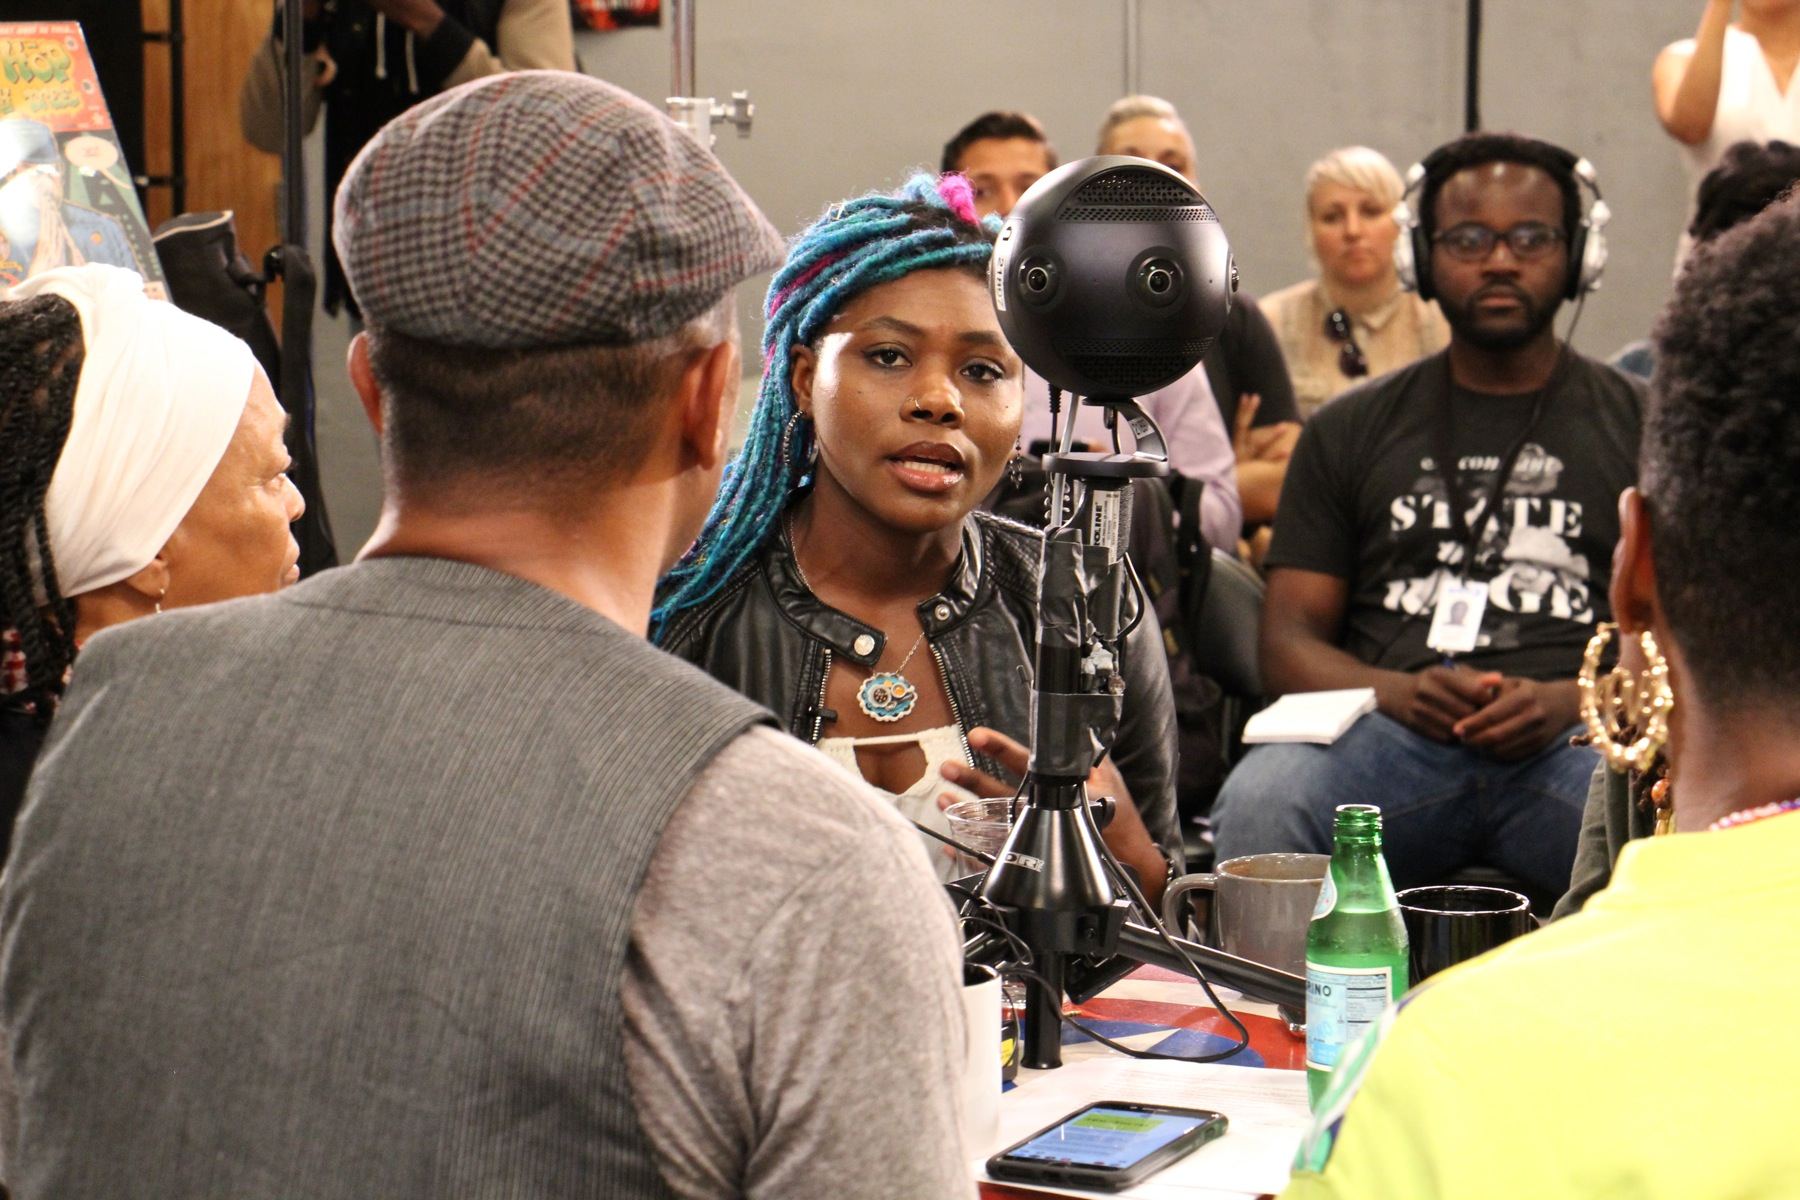 Amalgam Comics owner Ariell Johnson (center) participates in a roundtable discussion with other black coffeeshop owners focusing on how to boost black businesses and combat racism.